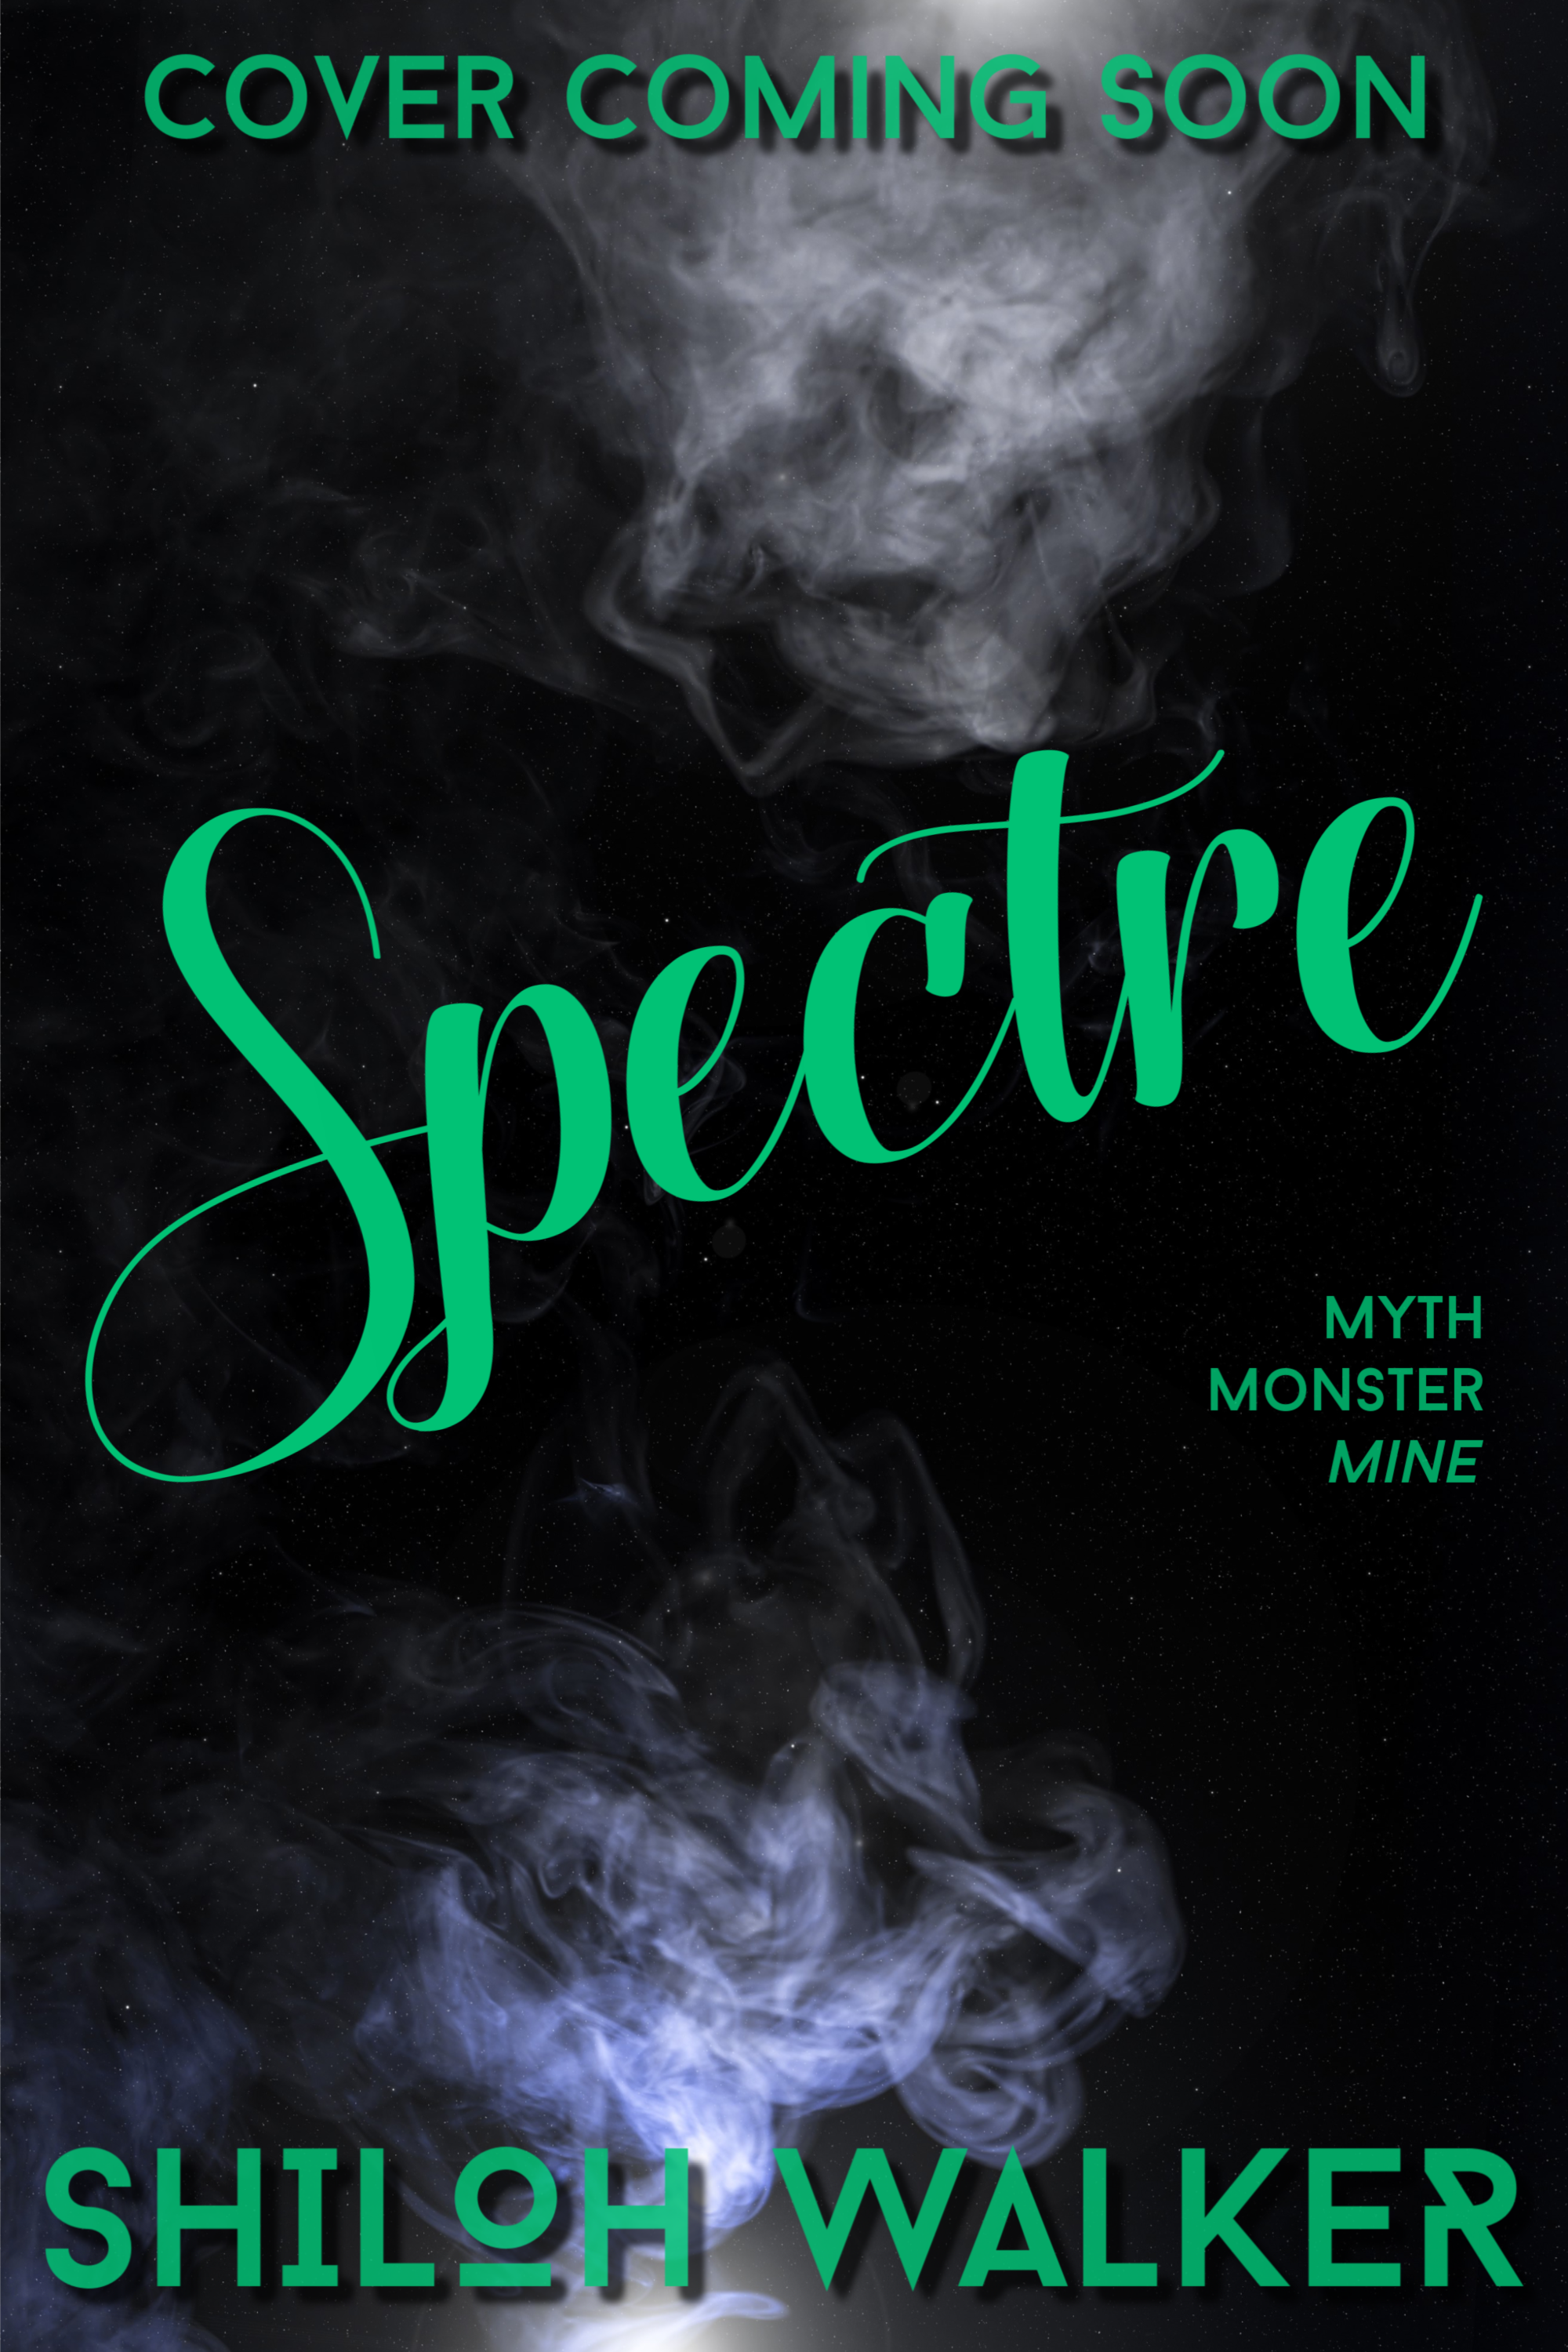 Dummy cover for Spectre